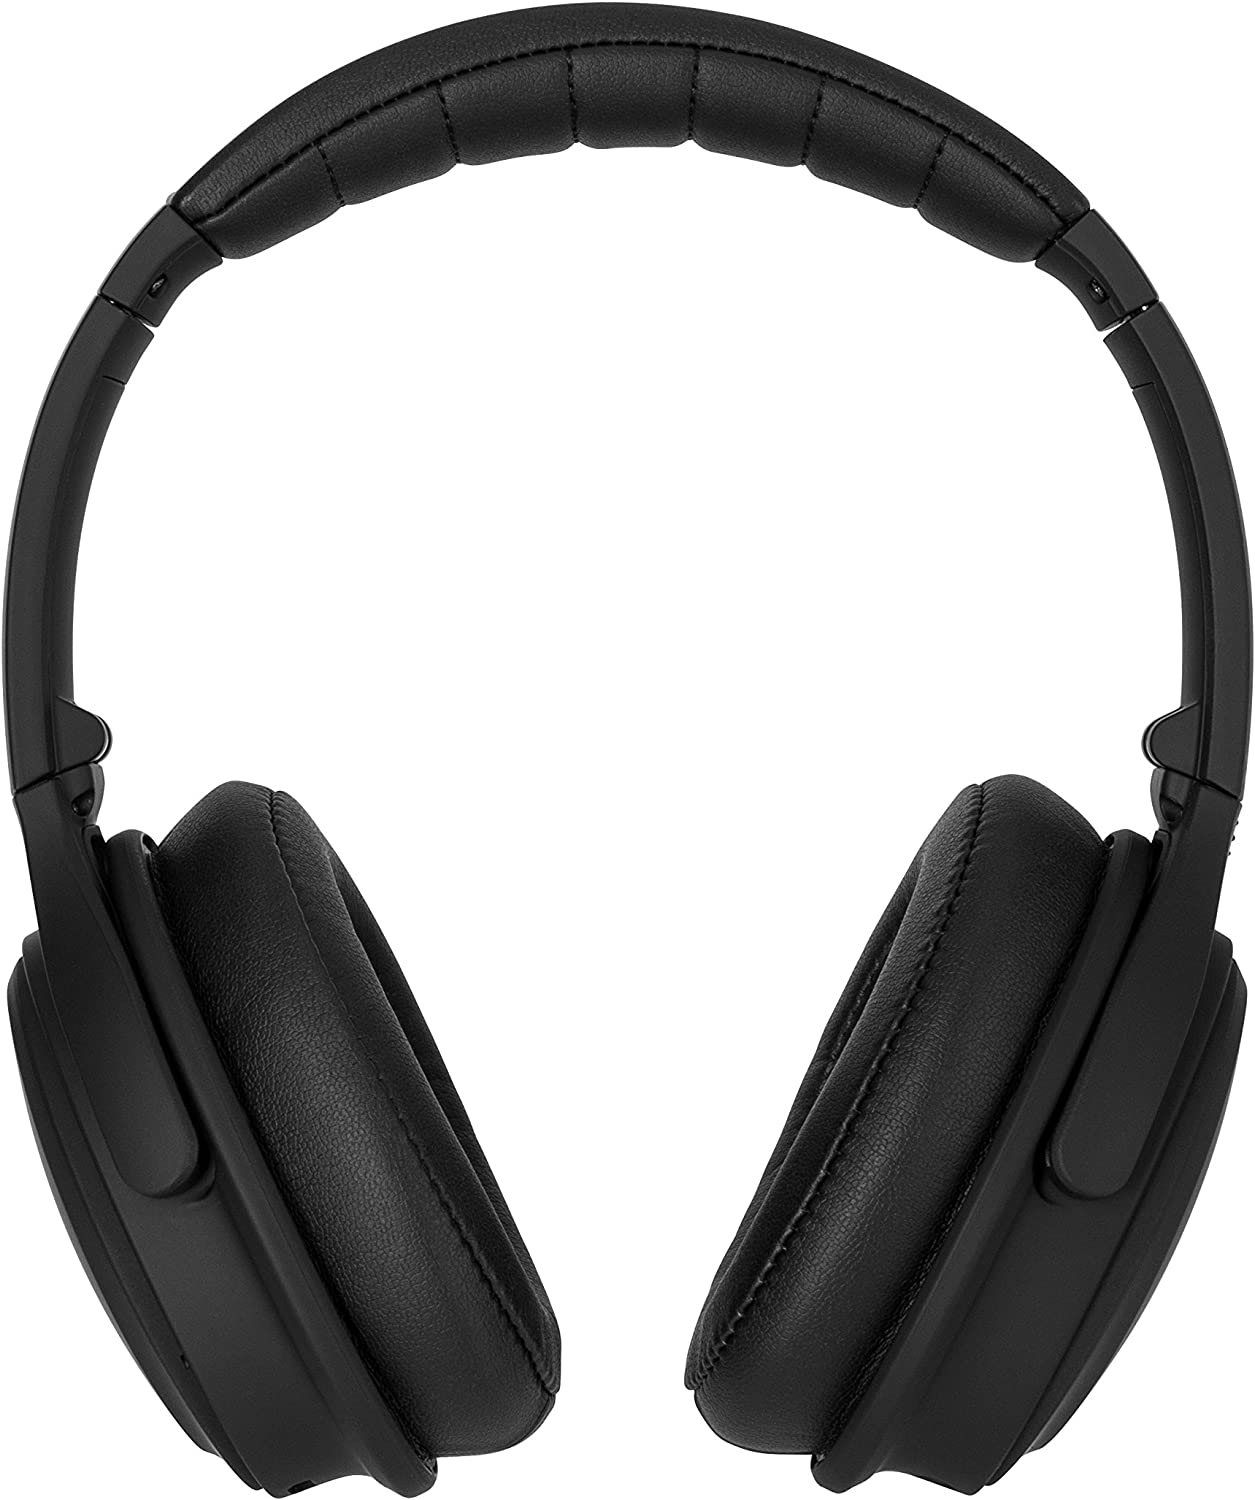 Xqisit ANC oE400 Noise Canceling Bluetooth Wireless Headphones - Black